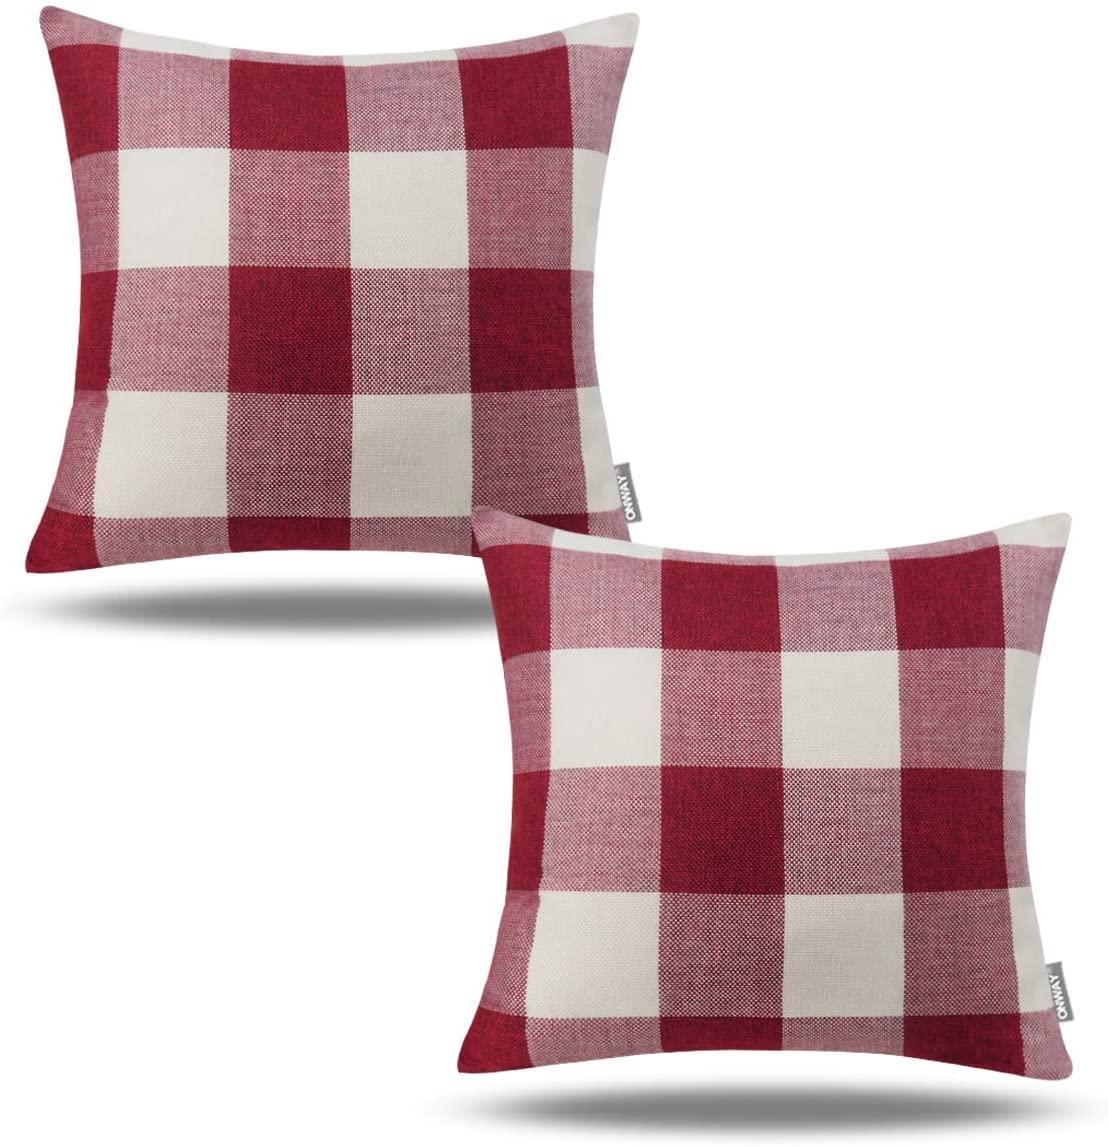 Check out this deal  50% OFF on Plaid Pillows  Price: $10.99 Link:    #ROTODEALS